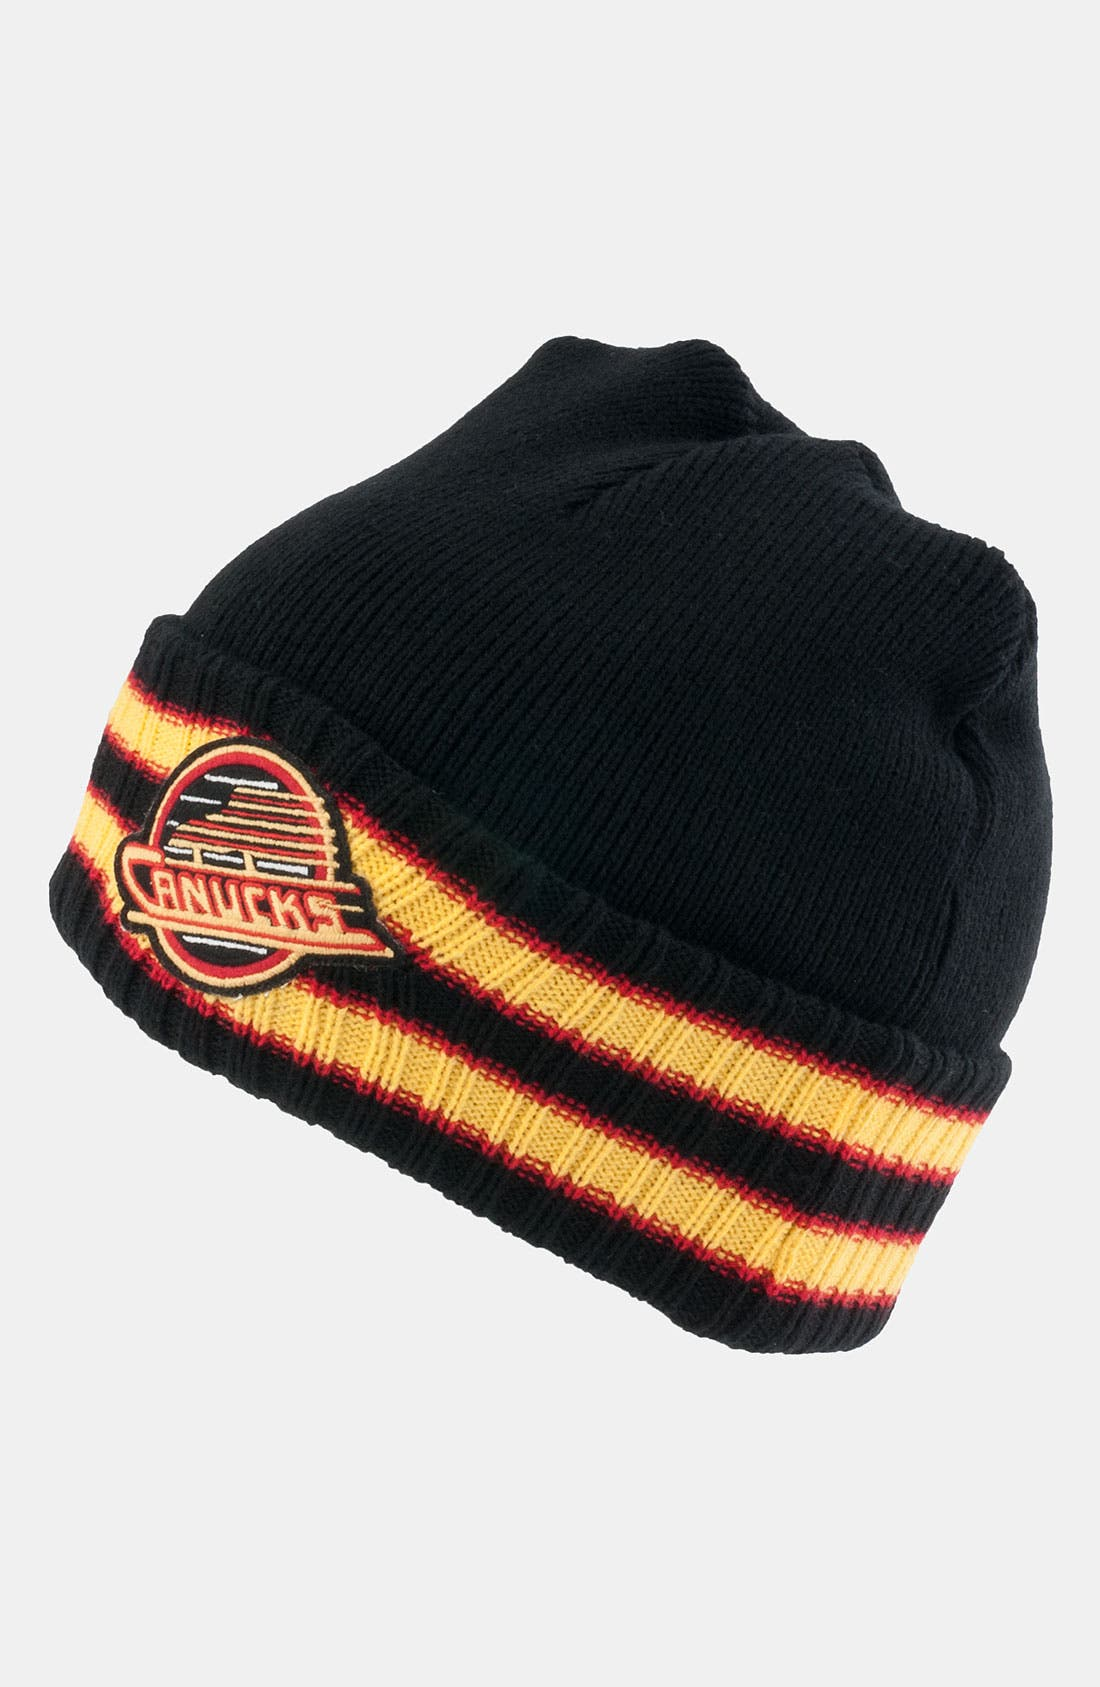 Main Image - American Needle 'Vancouver Canucks - Slash' Knit Hat